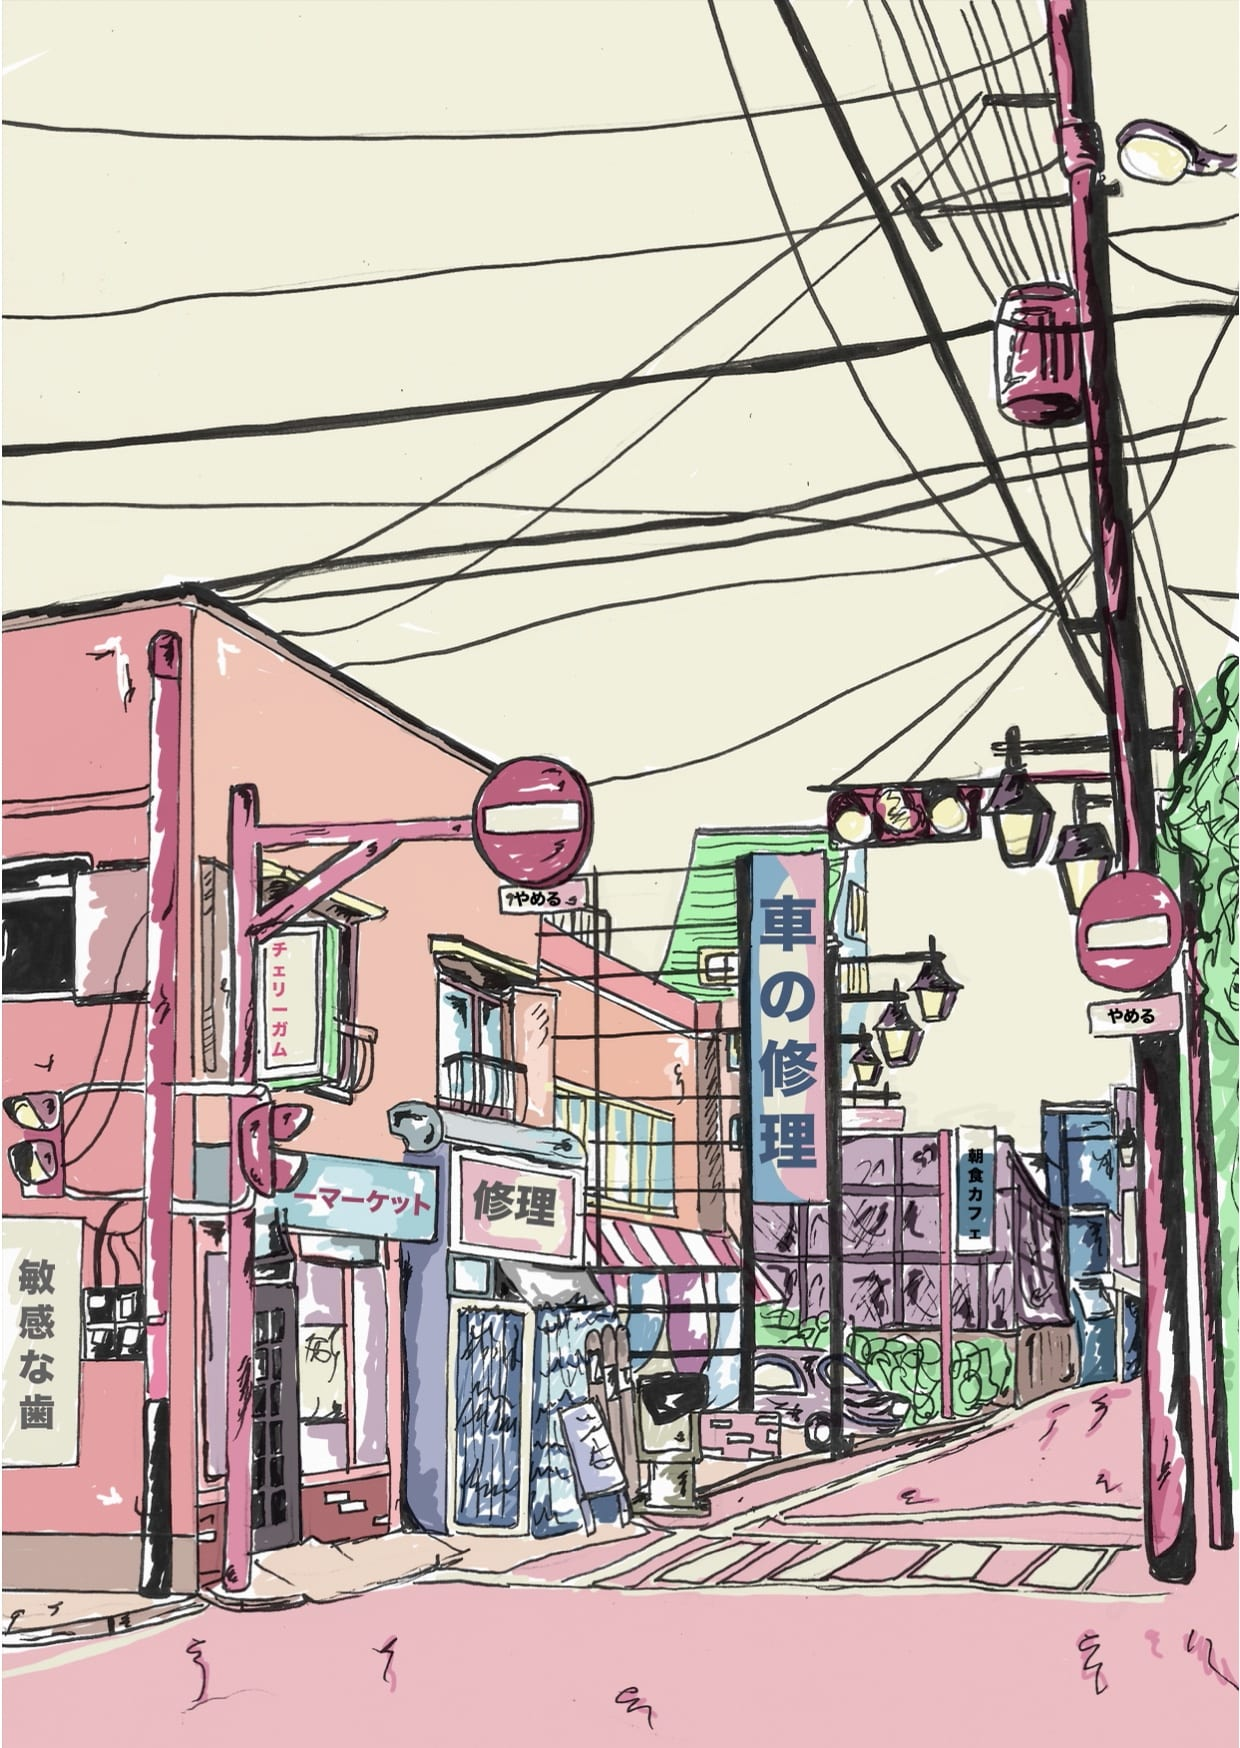 A backdrop from my project on the famous story of Hachiko the dog.